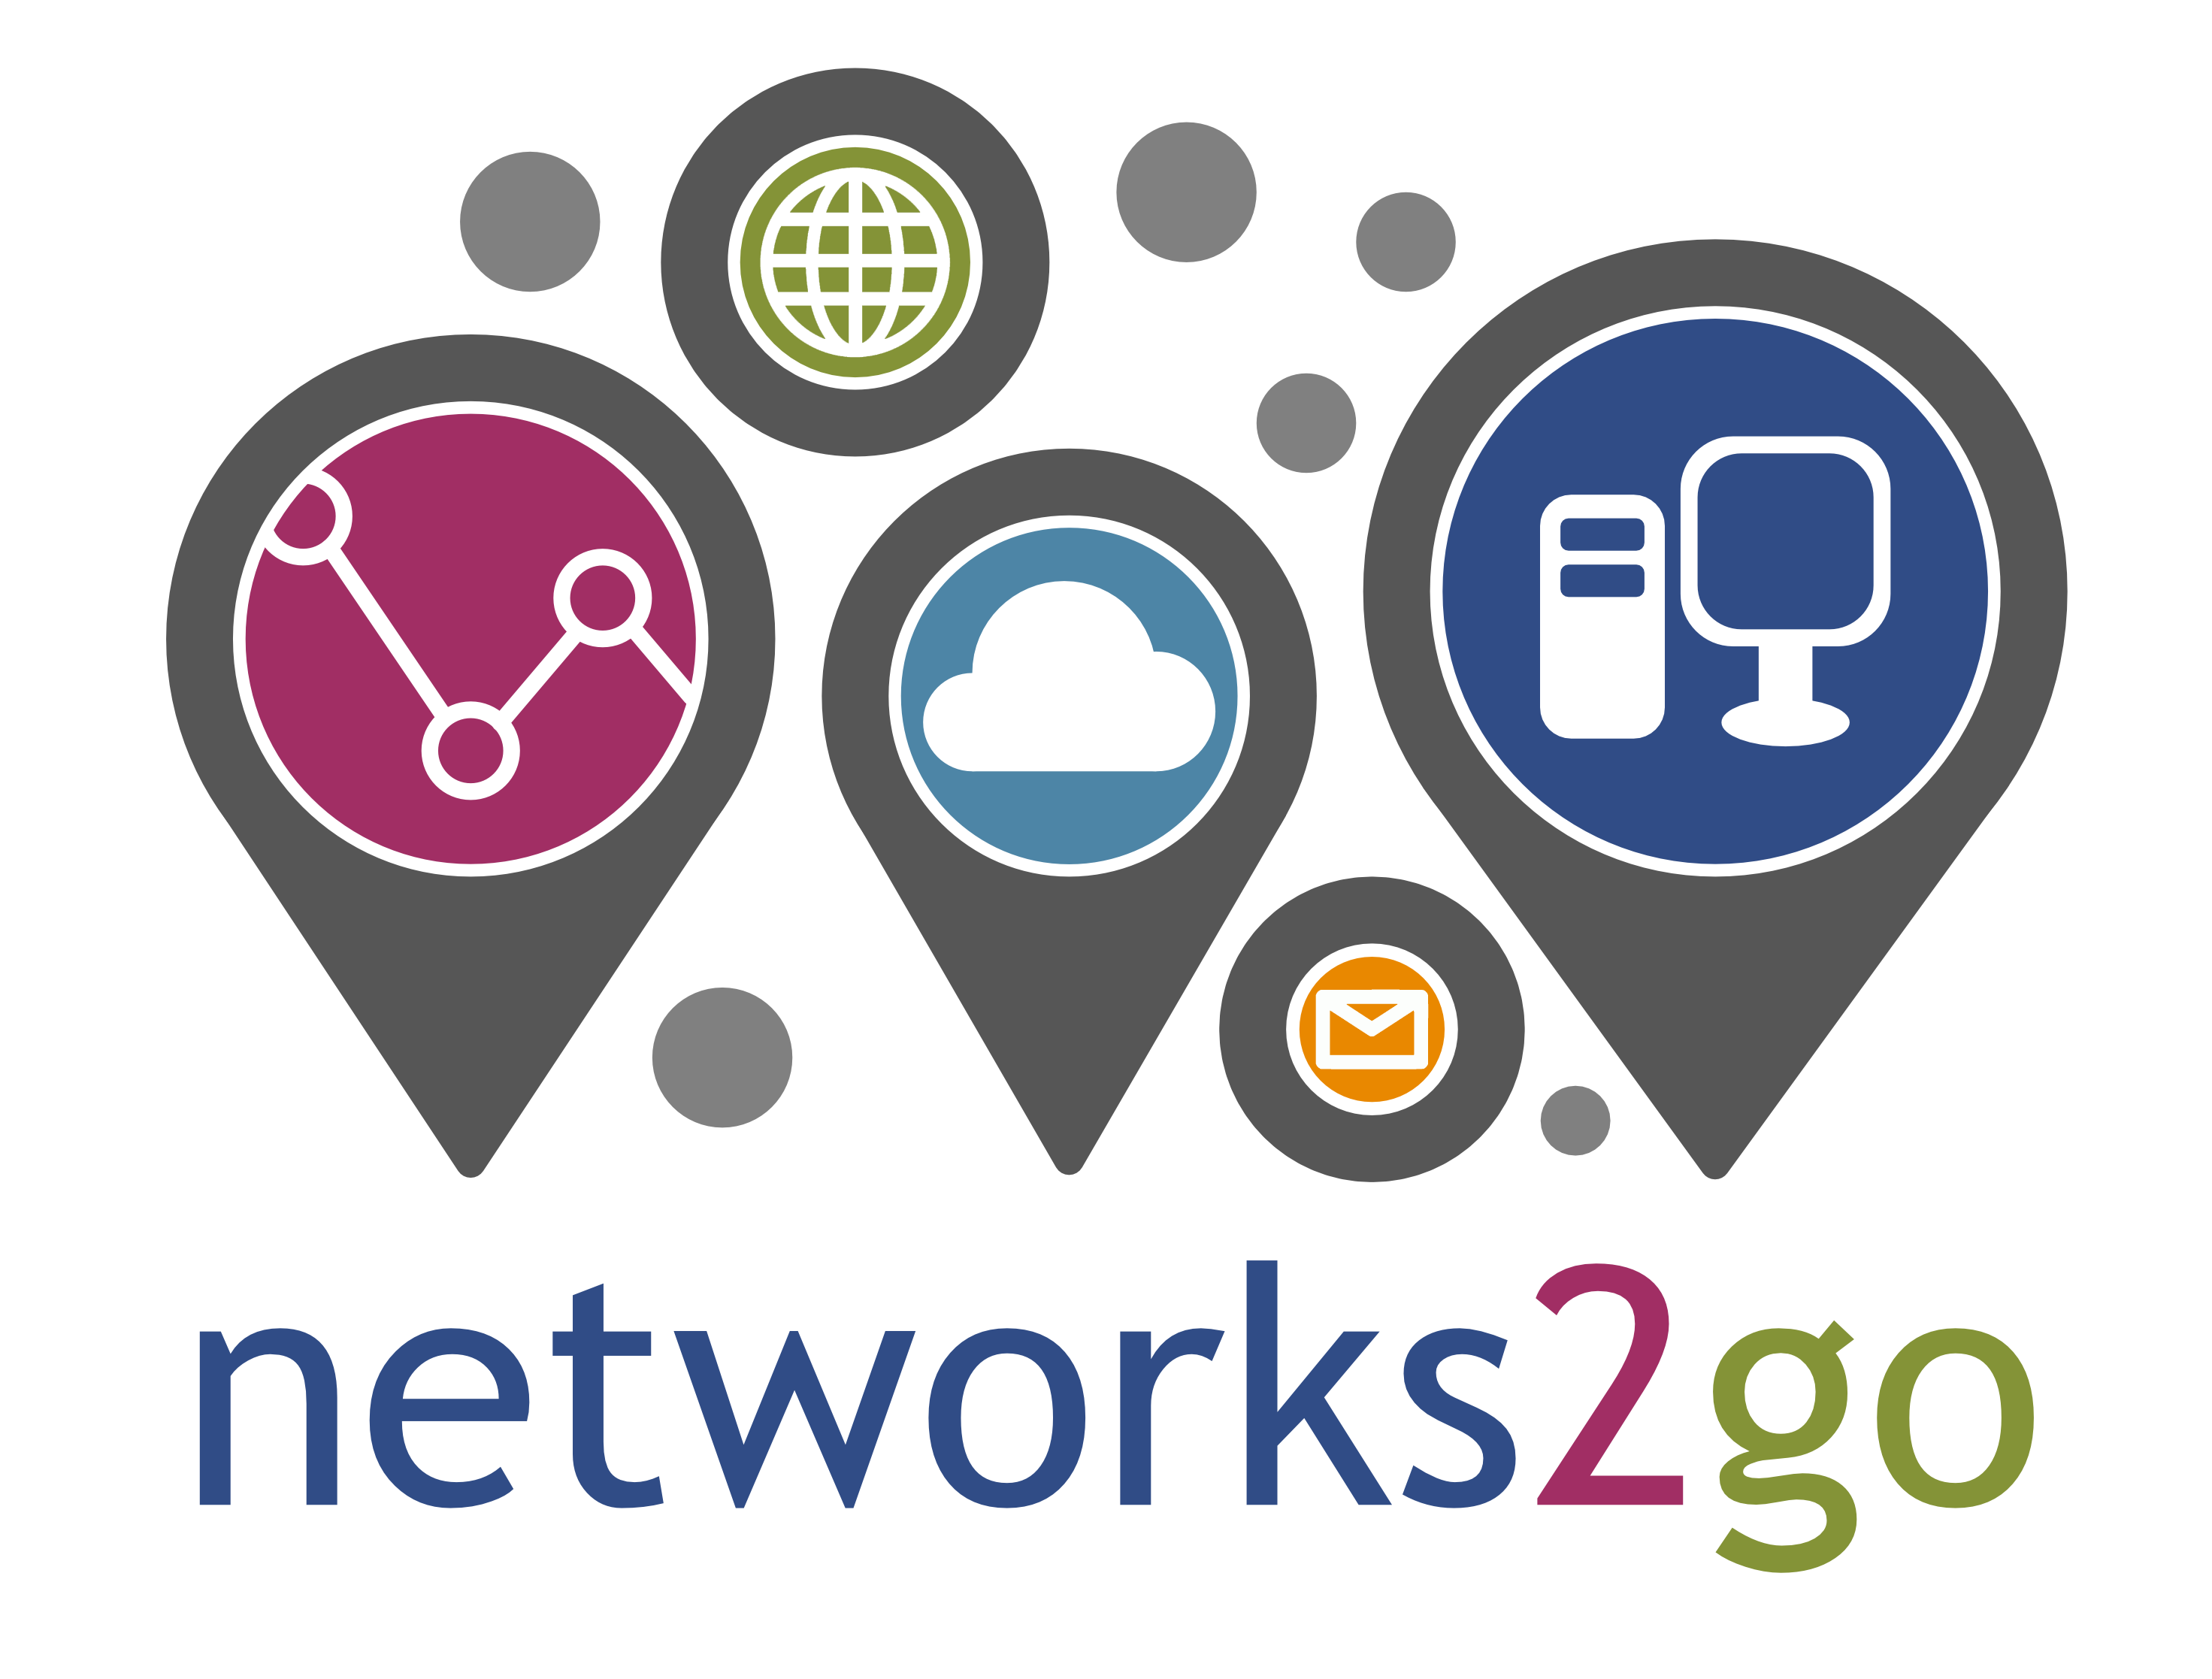 Networks2Go